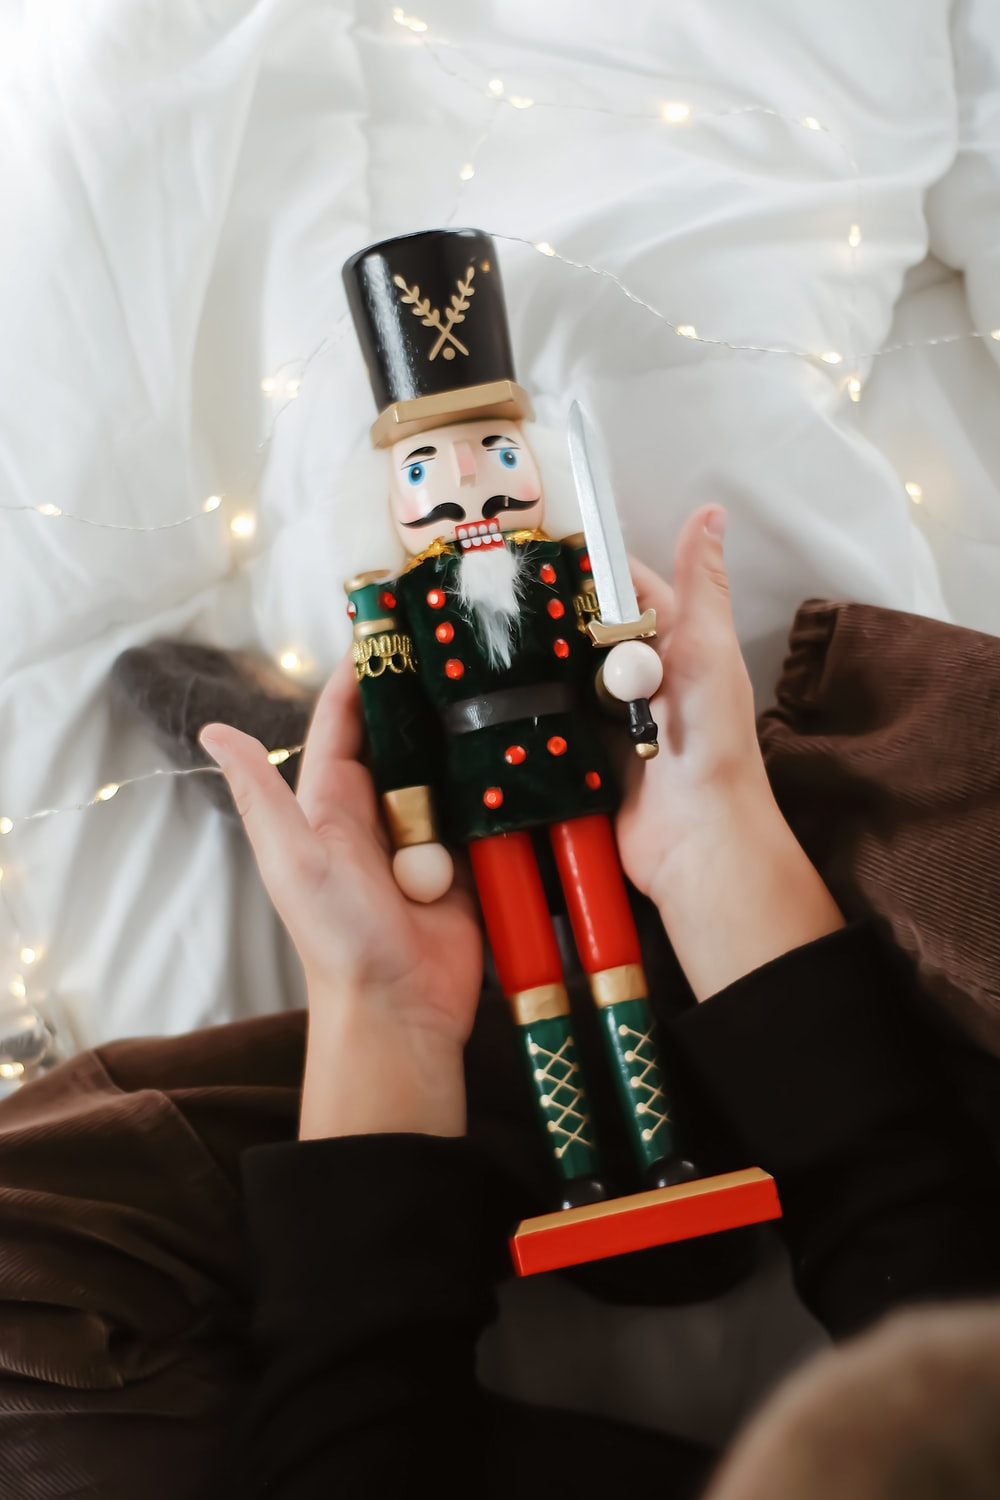 person holding black and white robot toy